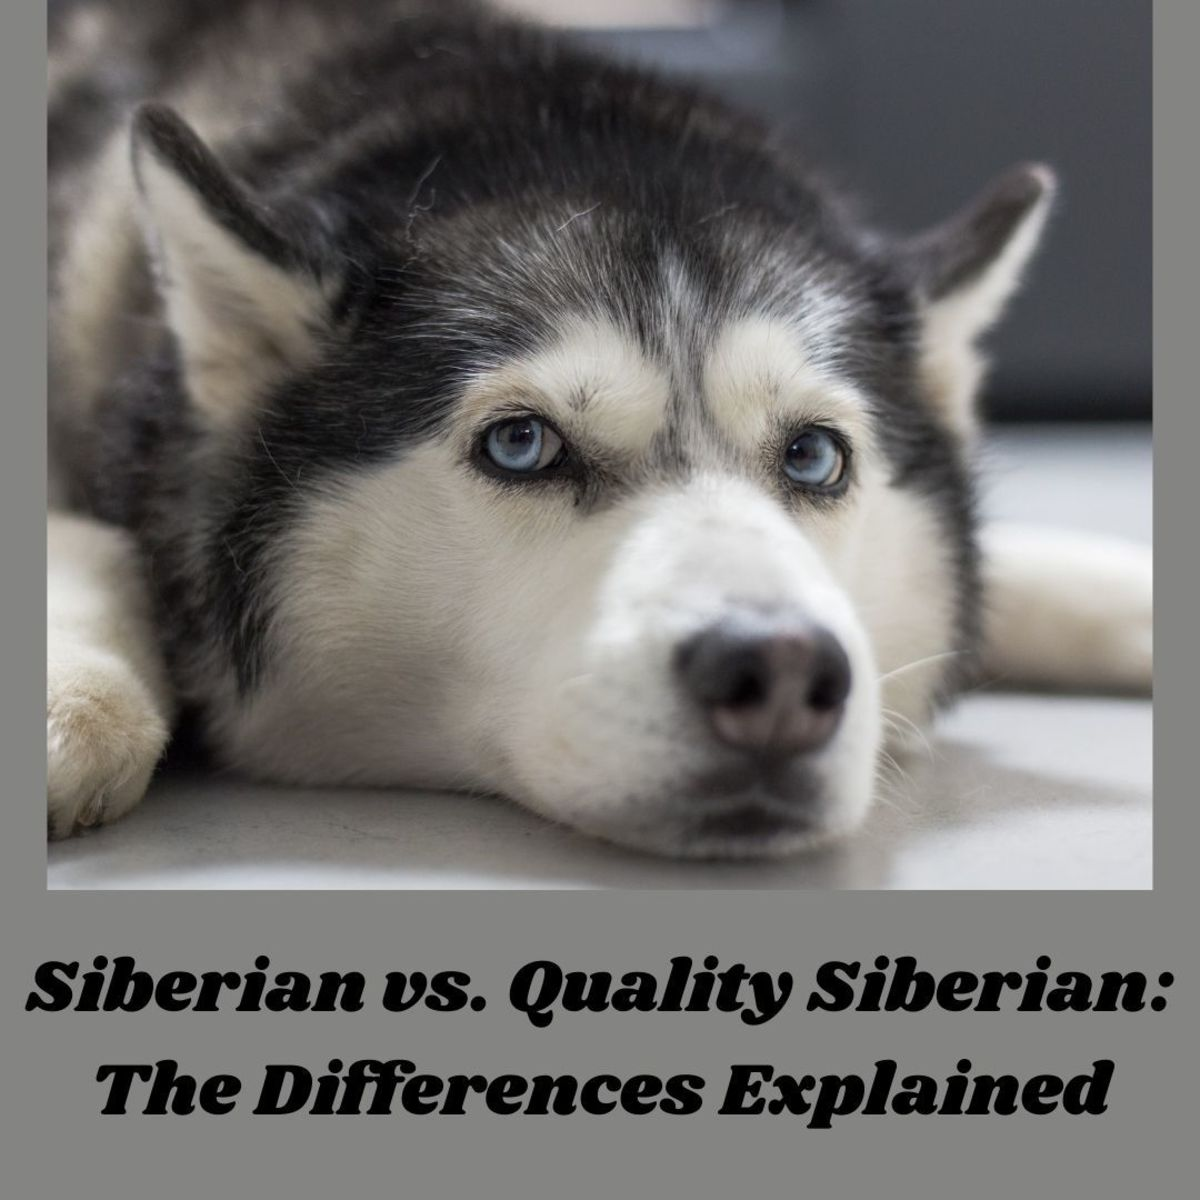 What are the differences between a Siberian and a quality Siberian?